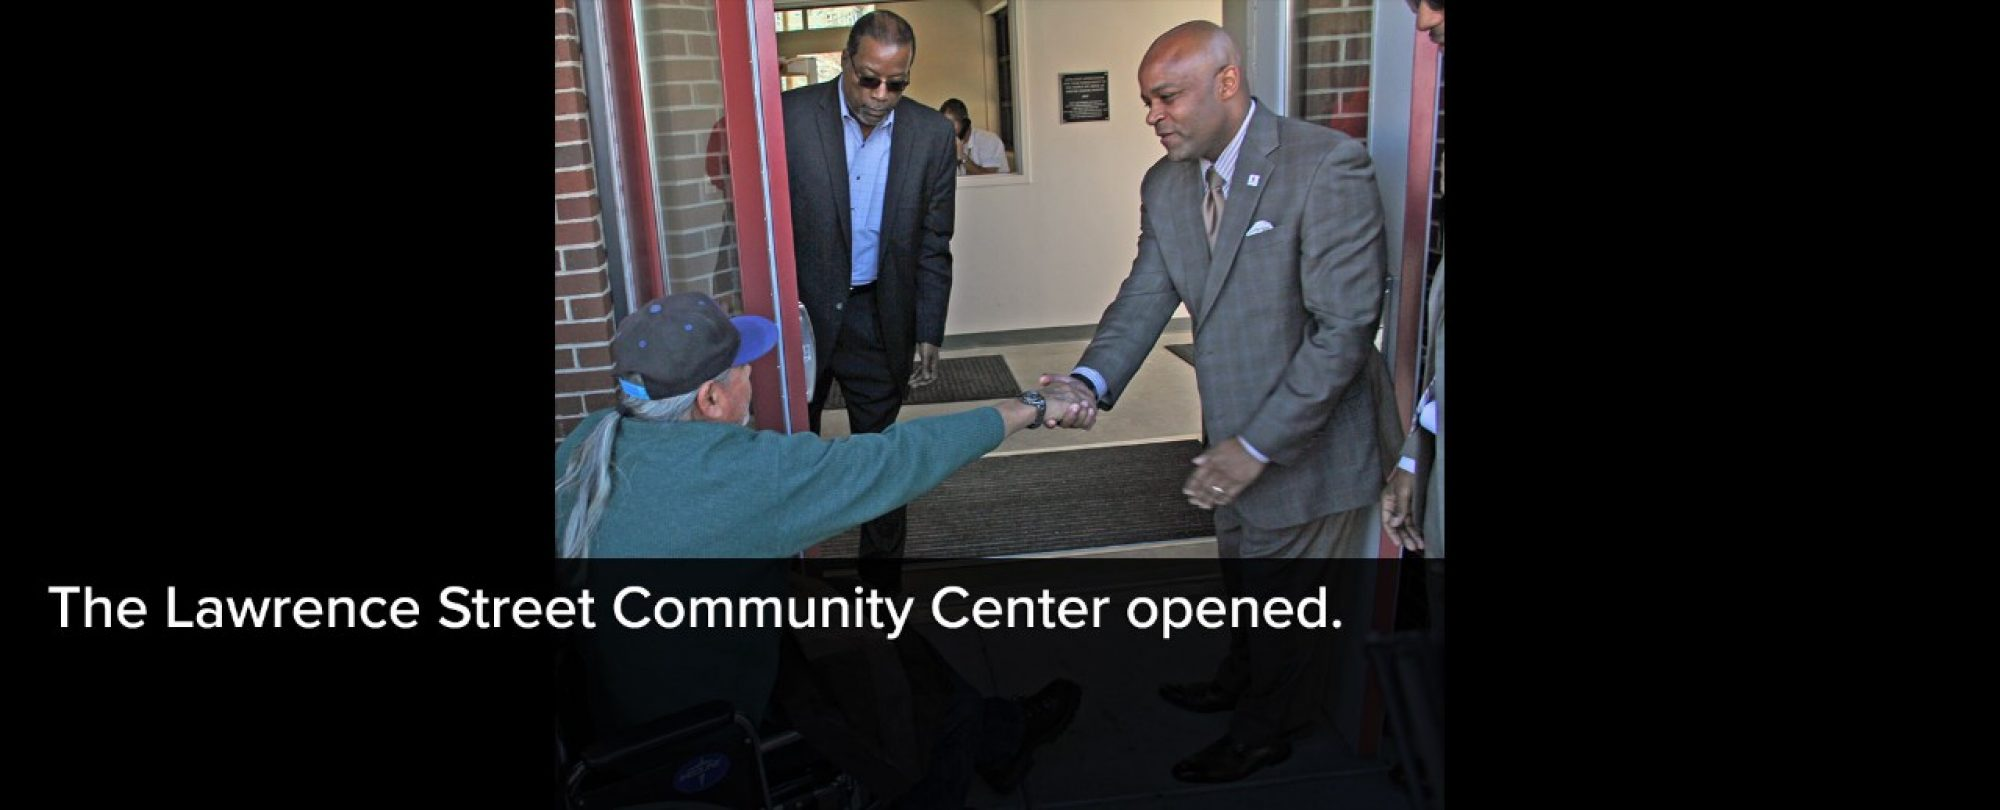 Photo of Mayor Michael B. Hancock greeting a visitor to the new Lawrence Street Community Center